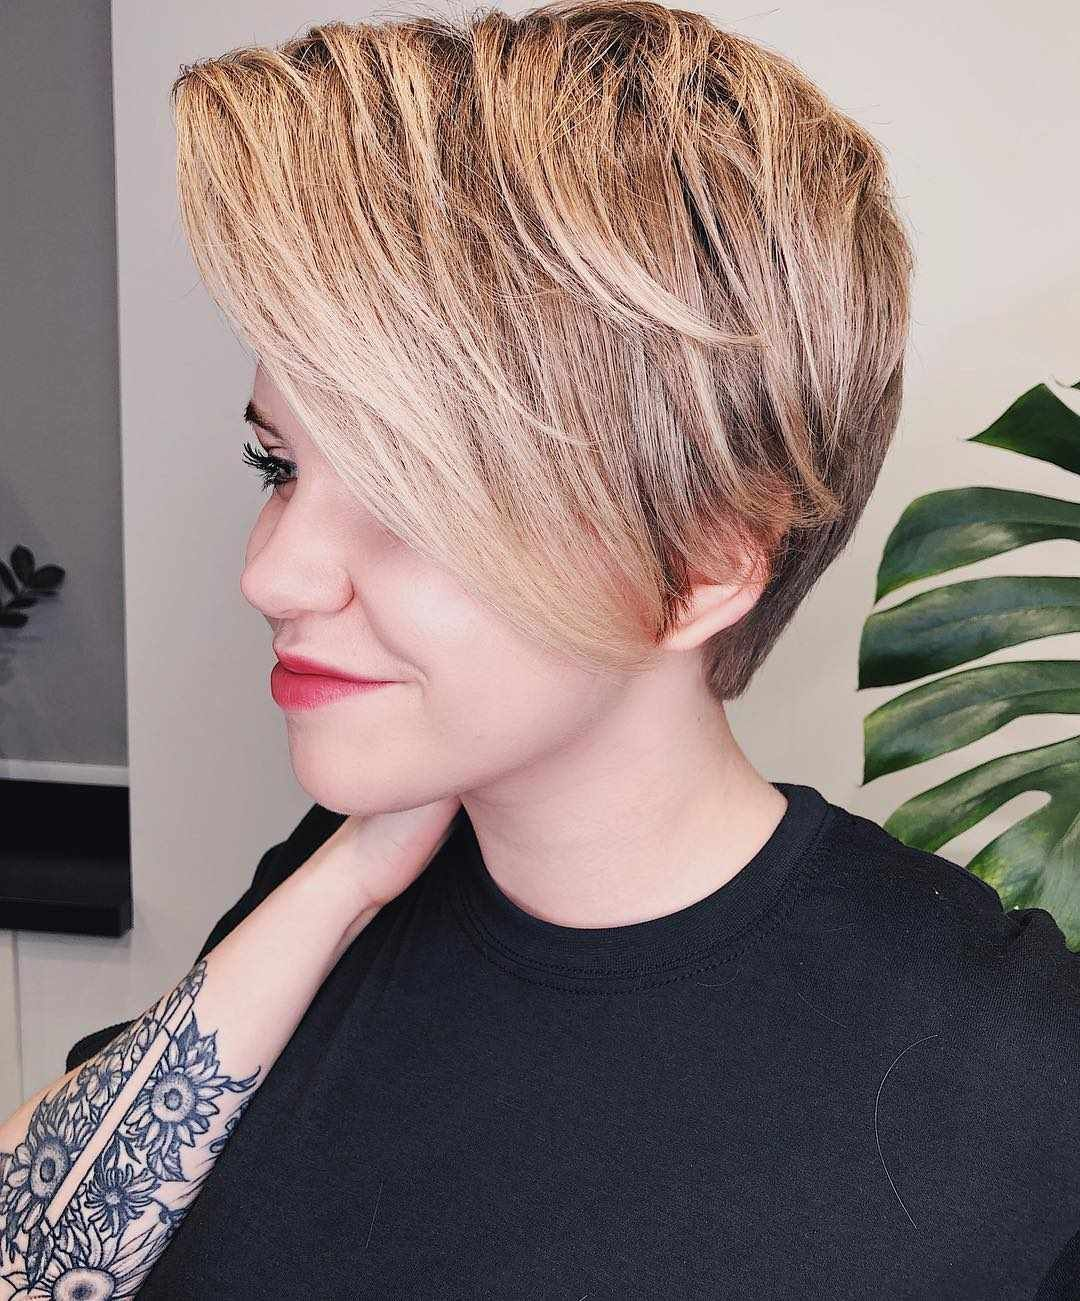 50 cute short haircuts and styles women 2019 | short blonde